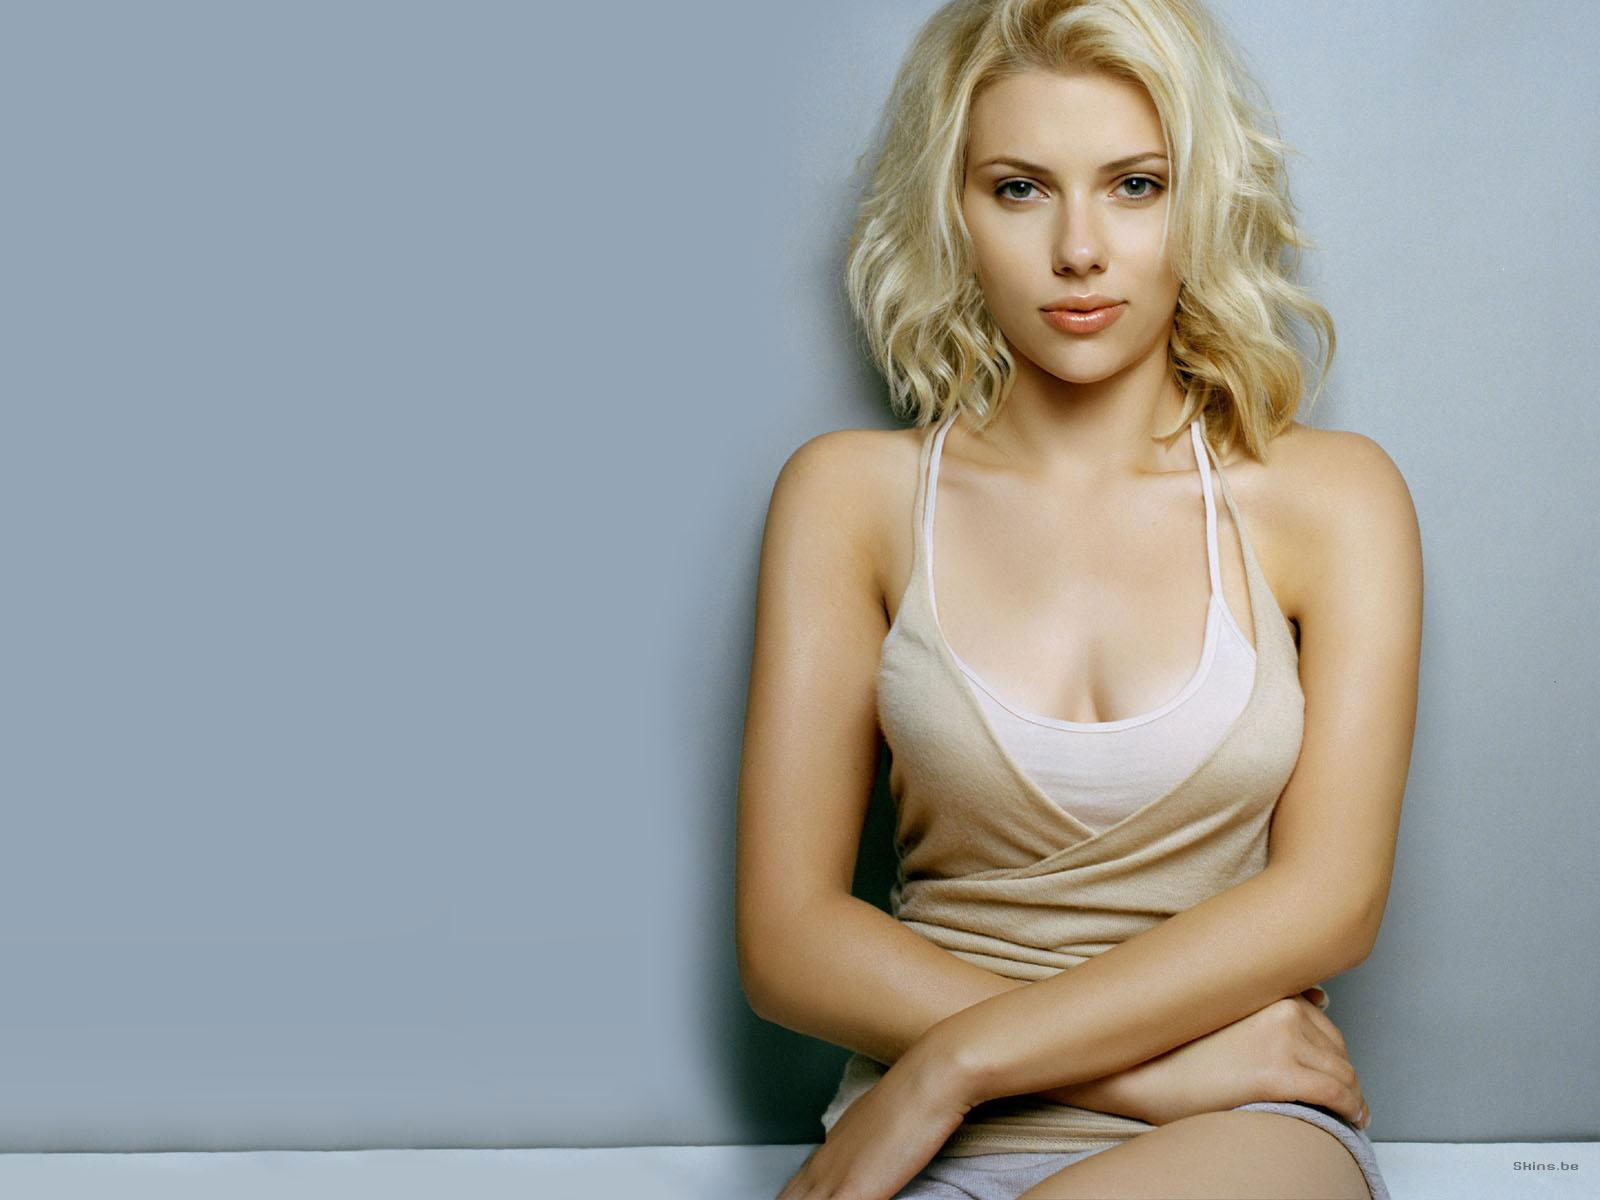 Scarlett Johansson HD Wallpapers and Background Images   Static 1600x1200